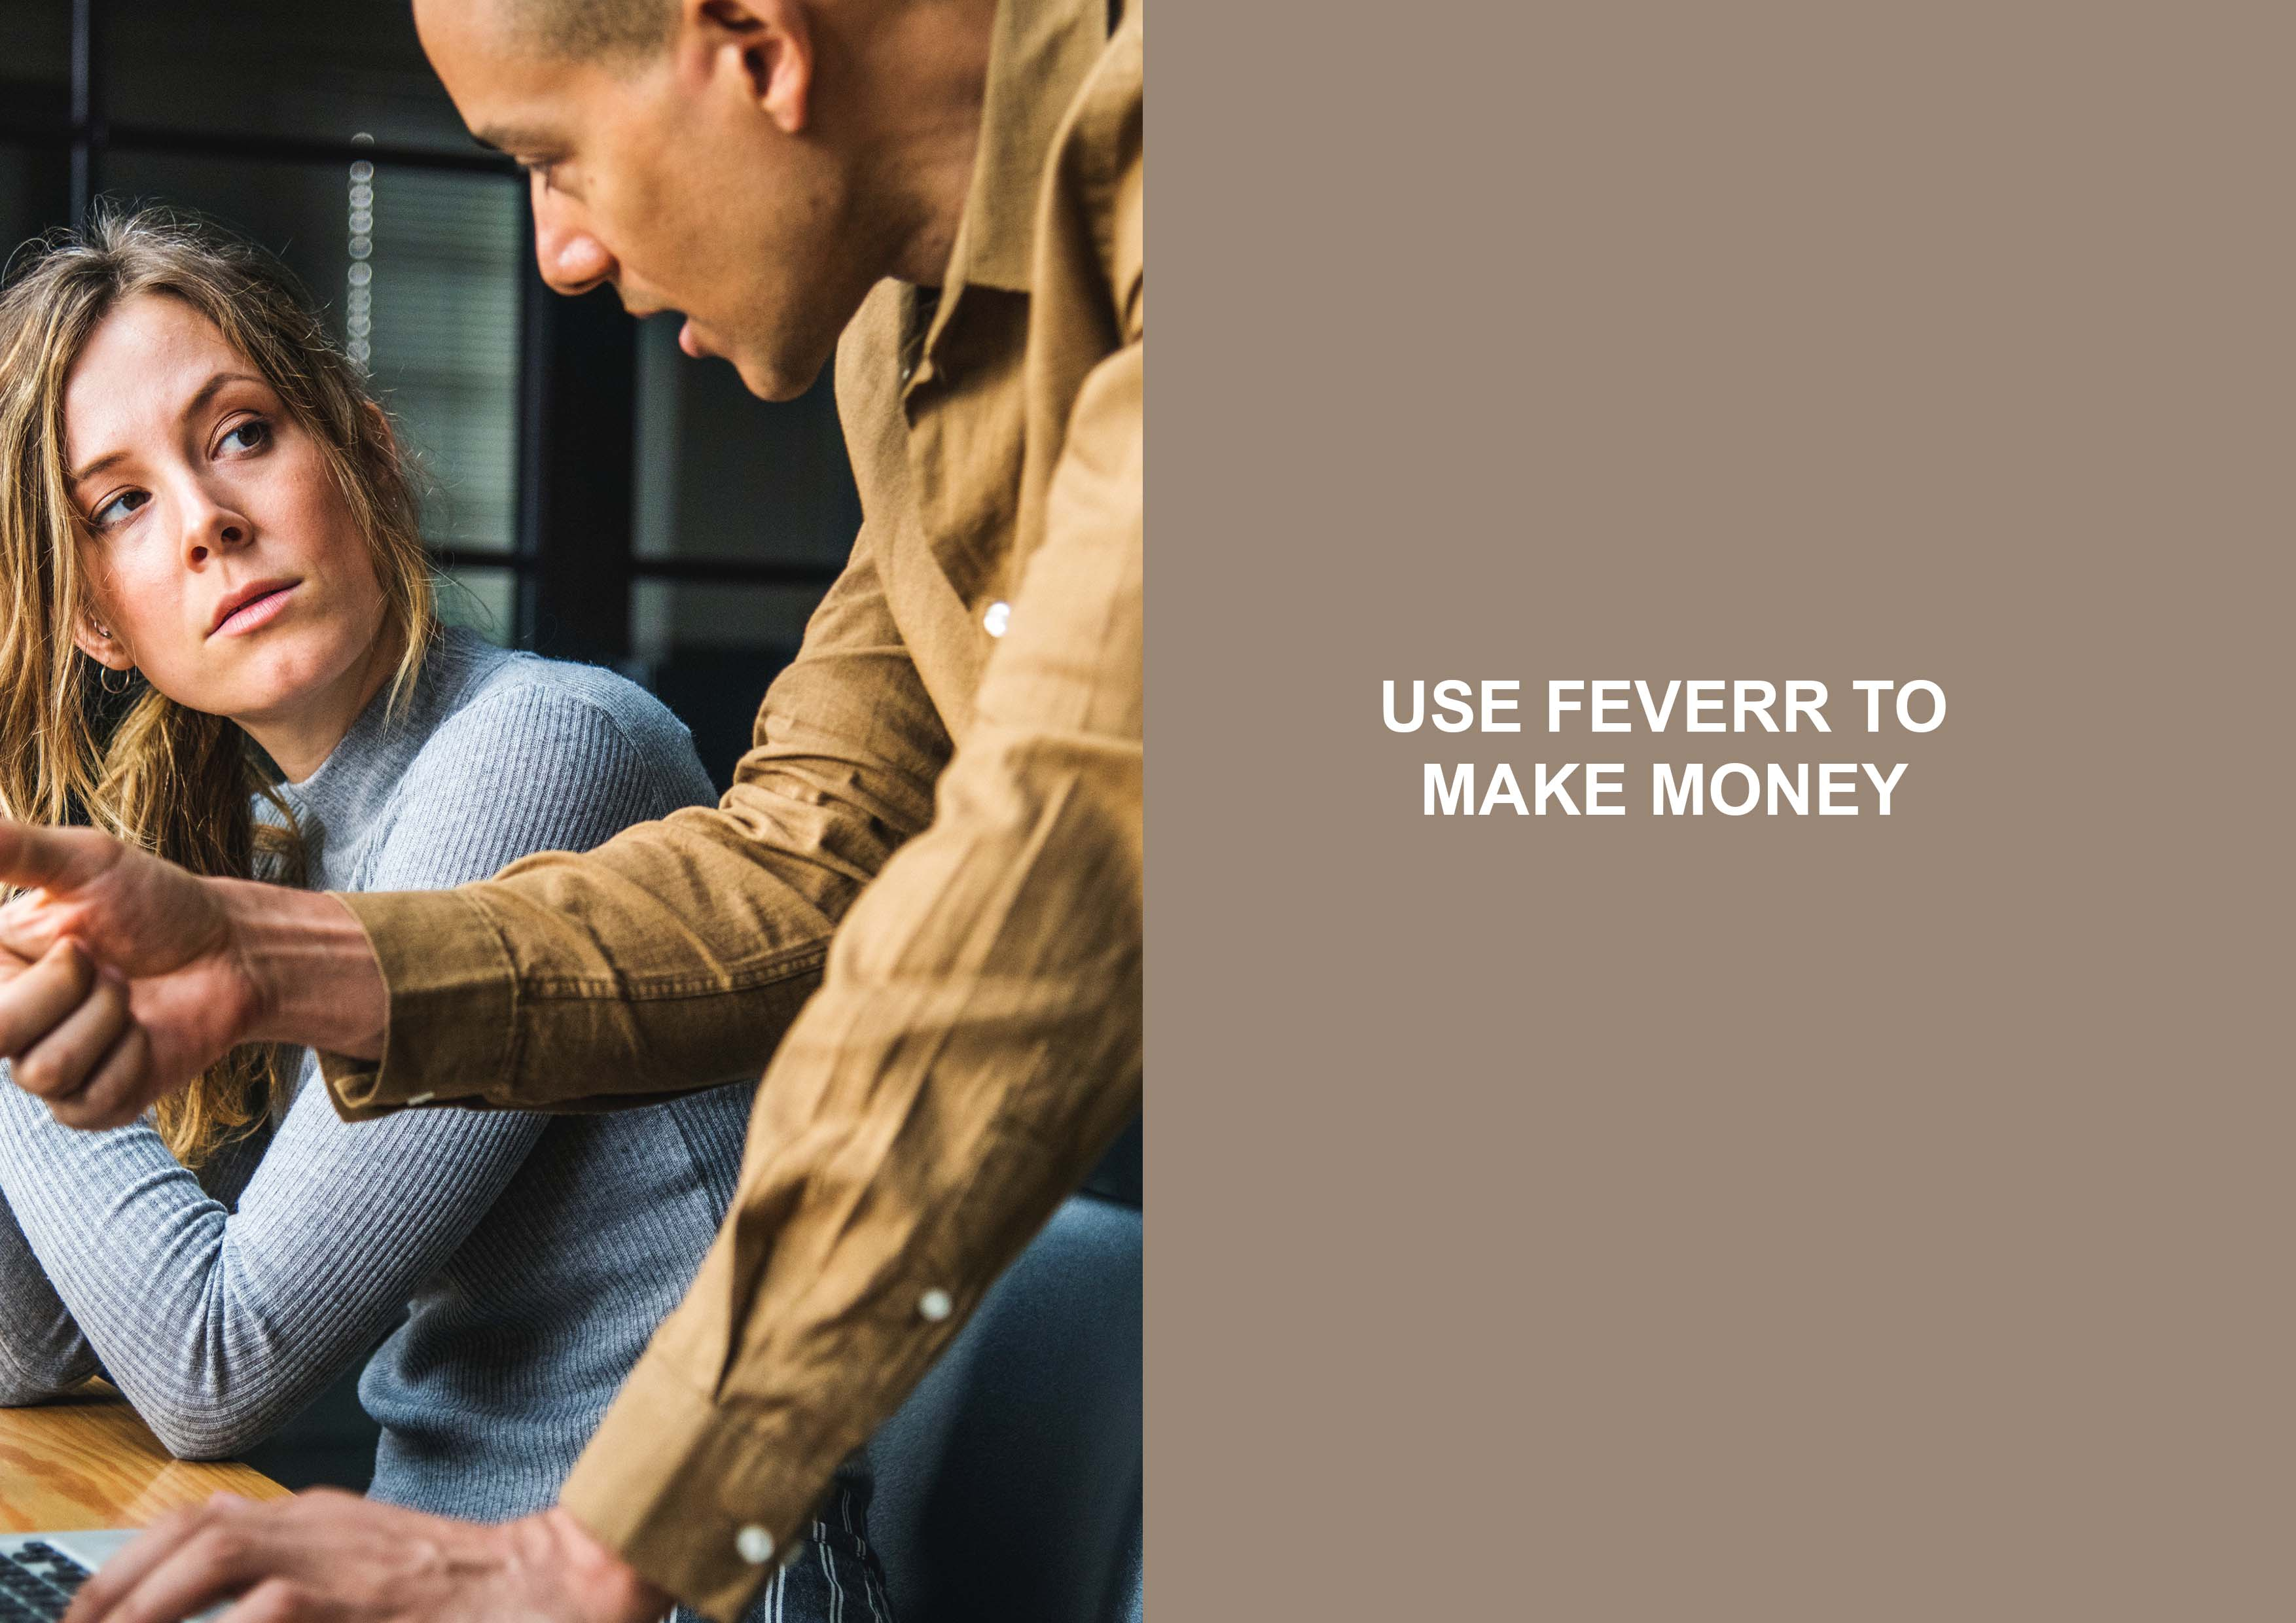 Use Fiverr To Make Money